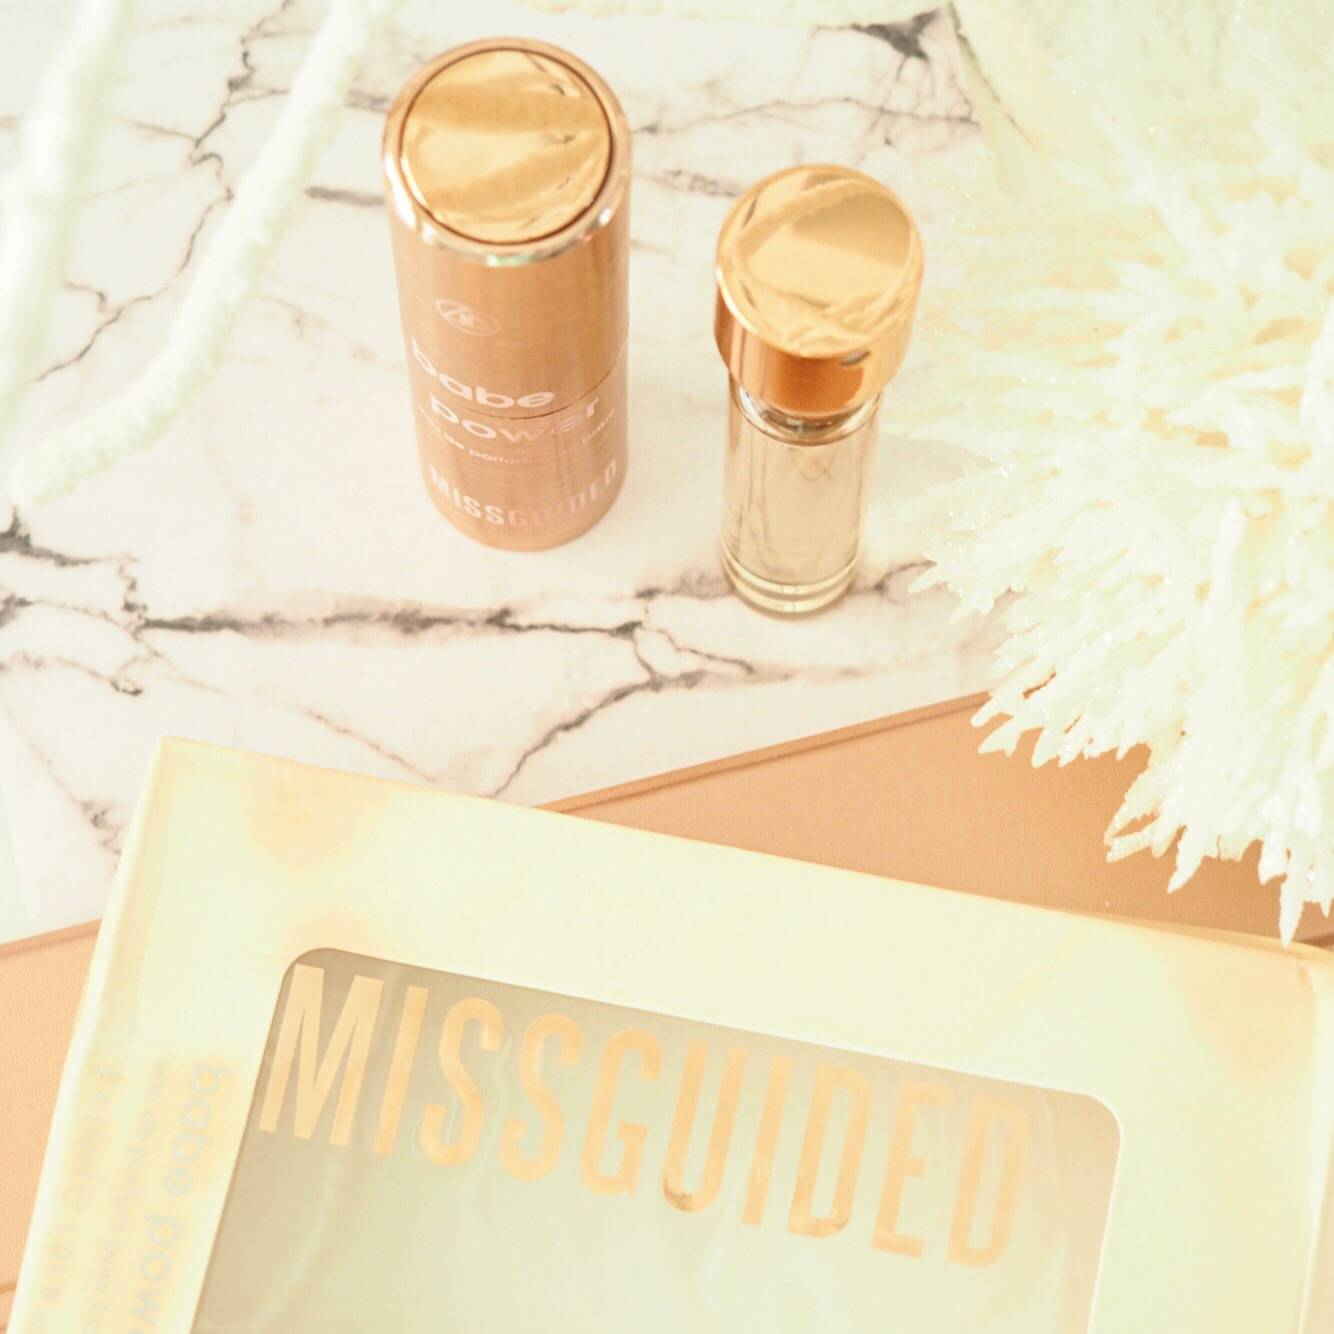 Missguided Babe Power Perfume